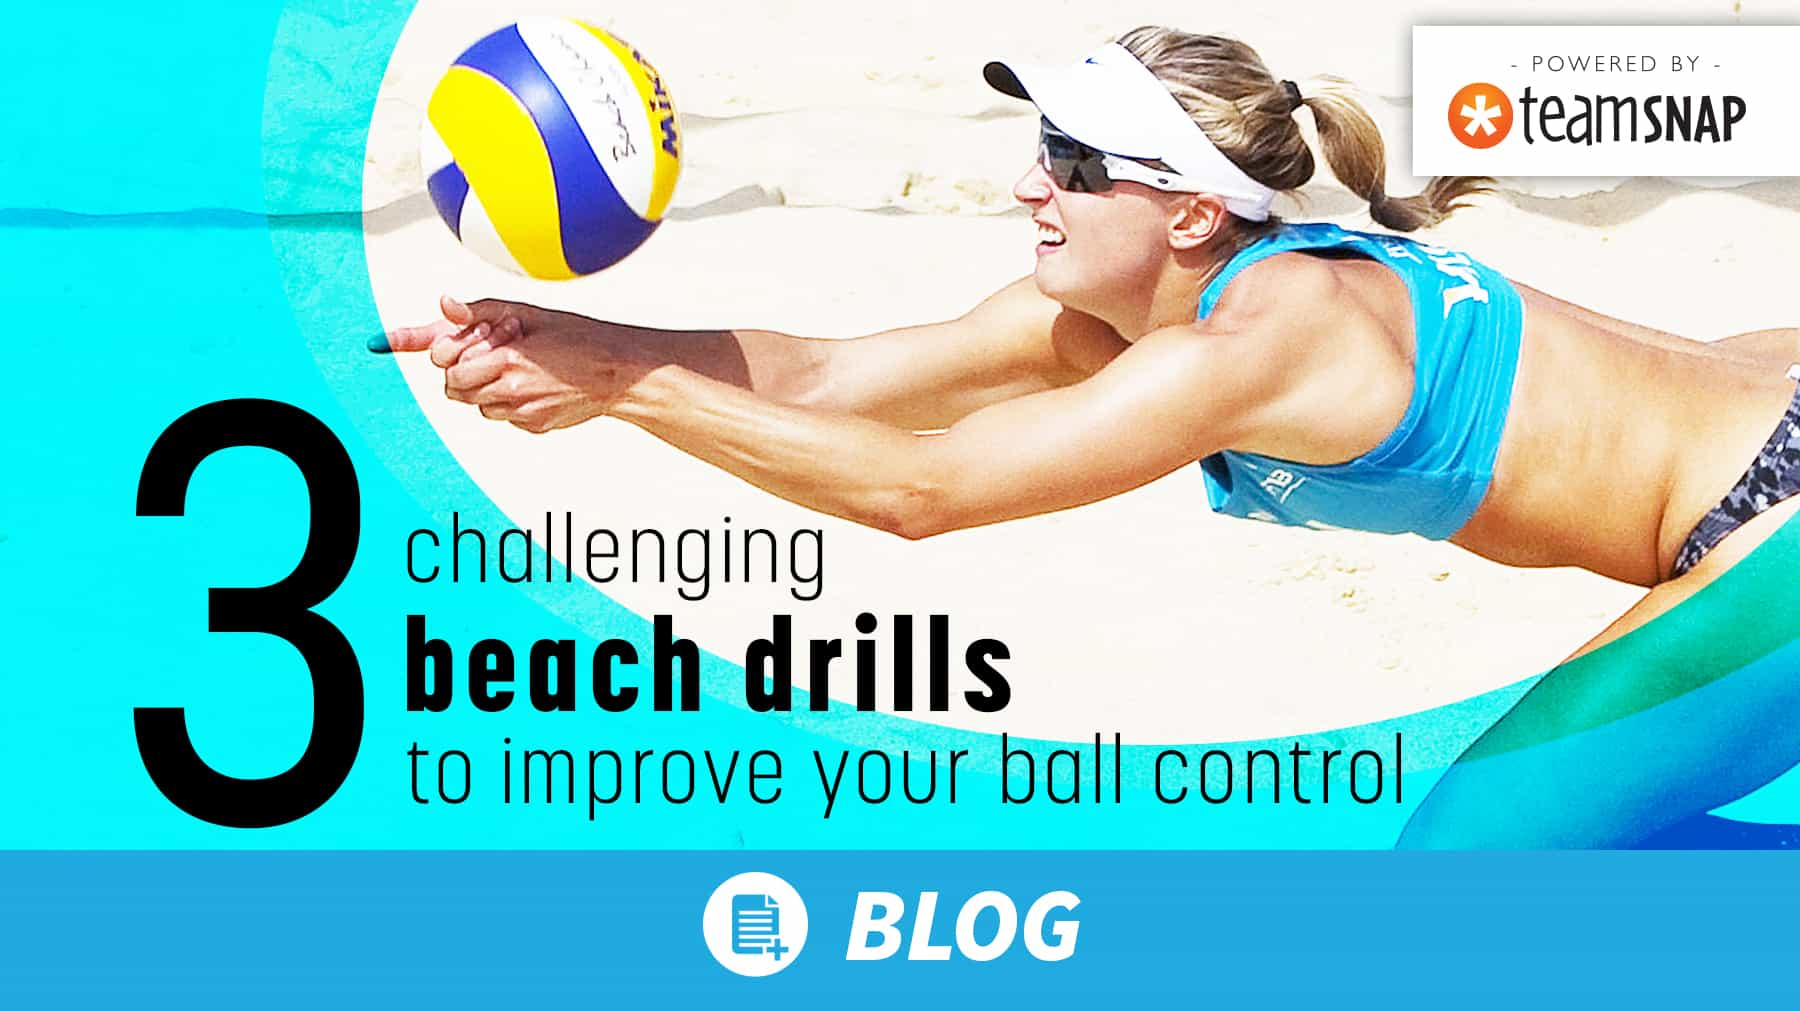 3 challenging beach drills to improve your ball control